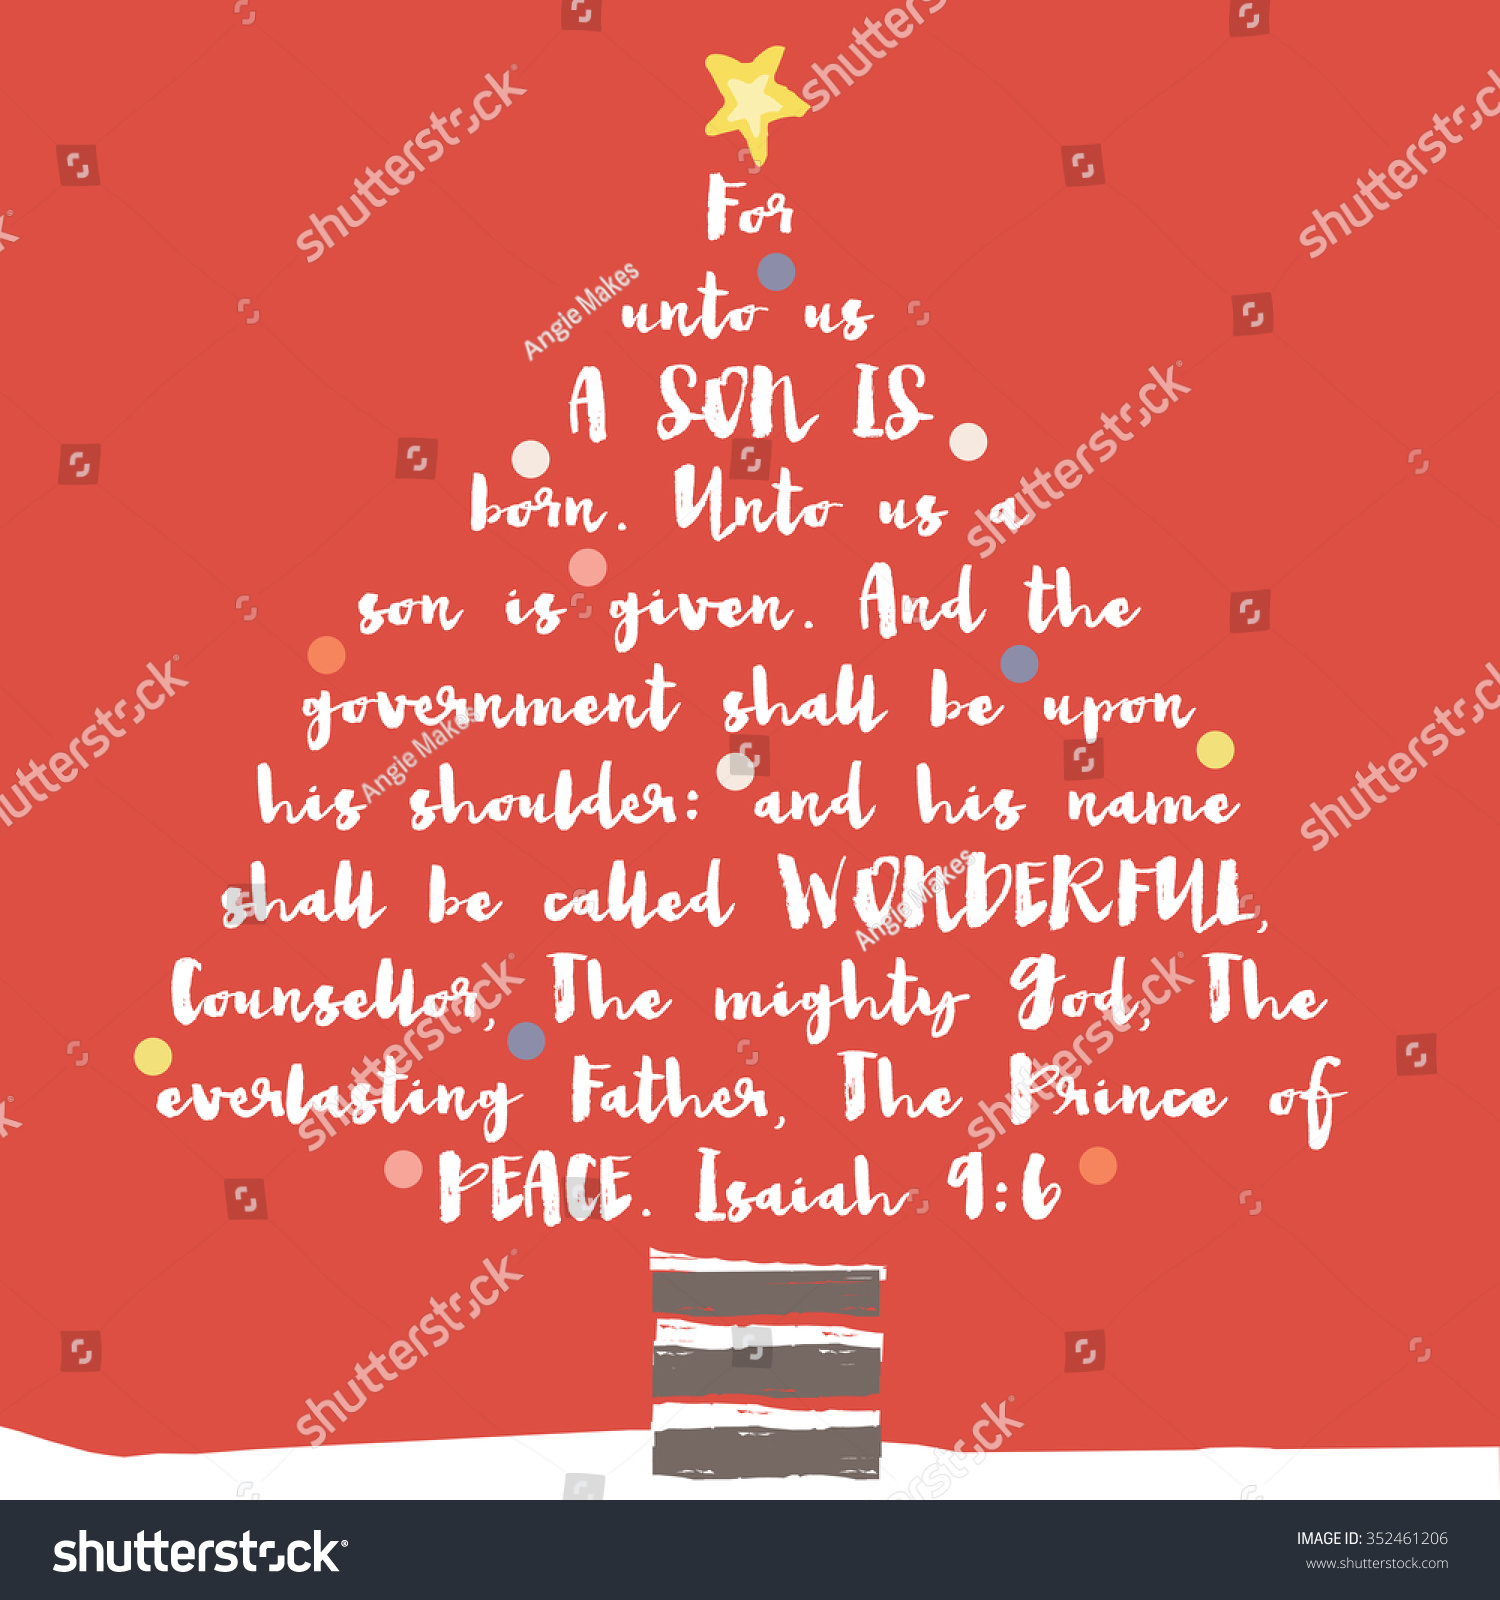 Christmas Tree Bible Verse Christian Bible Stock Illustration